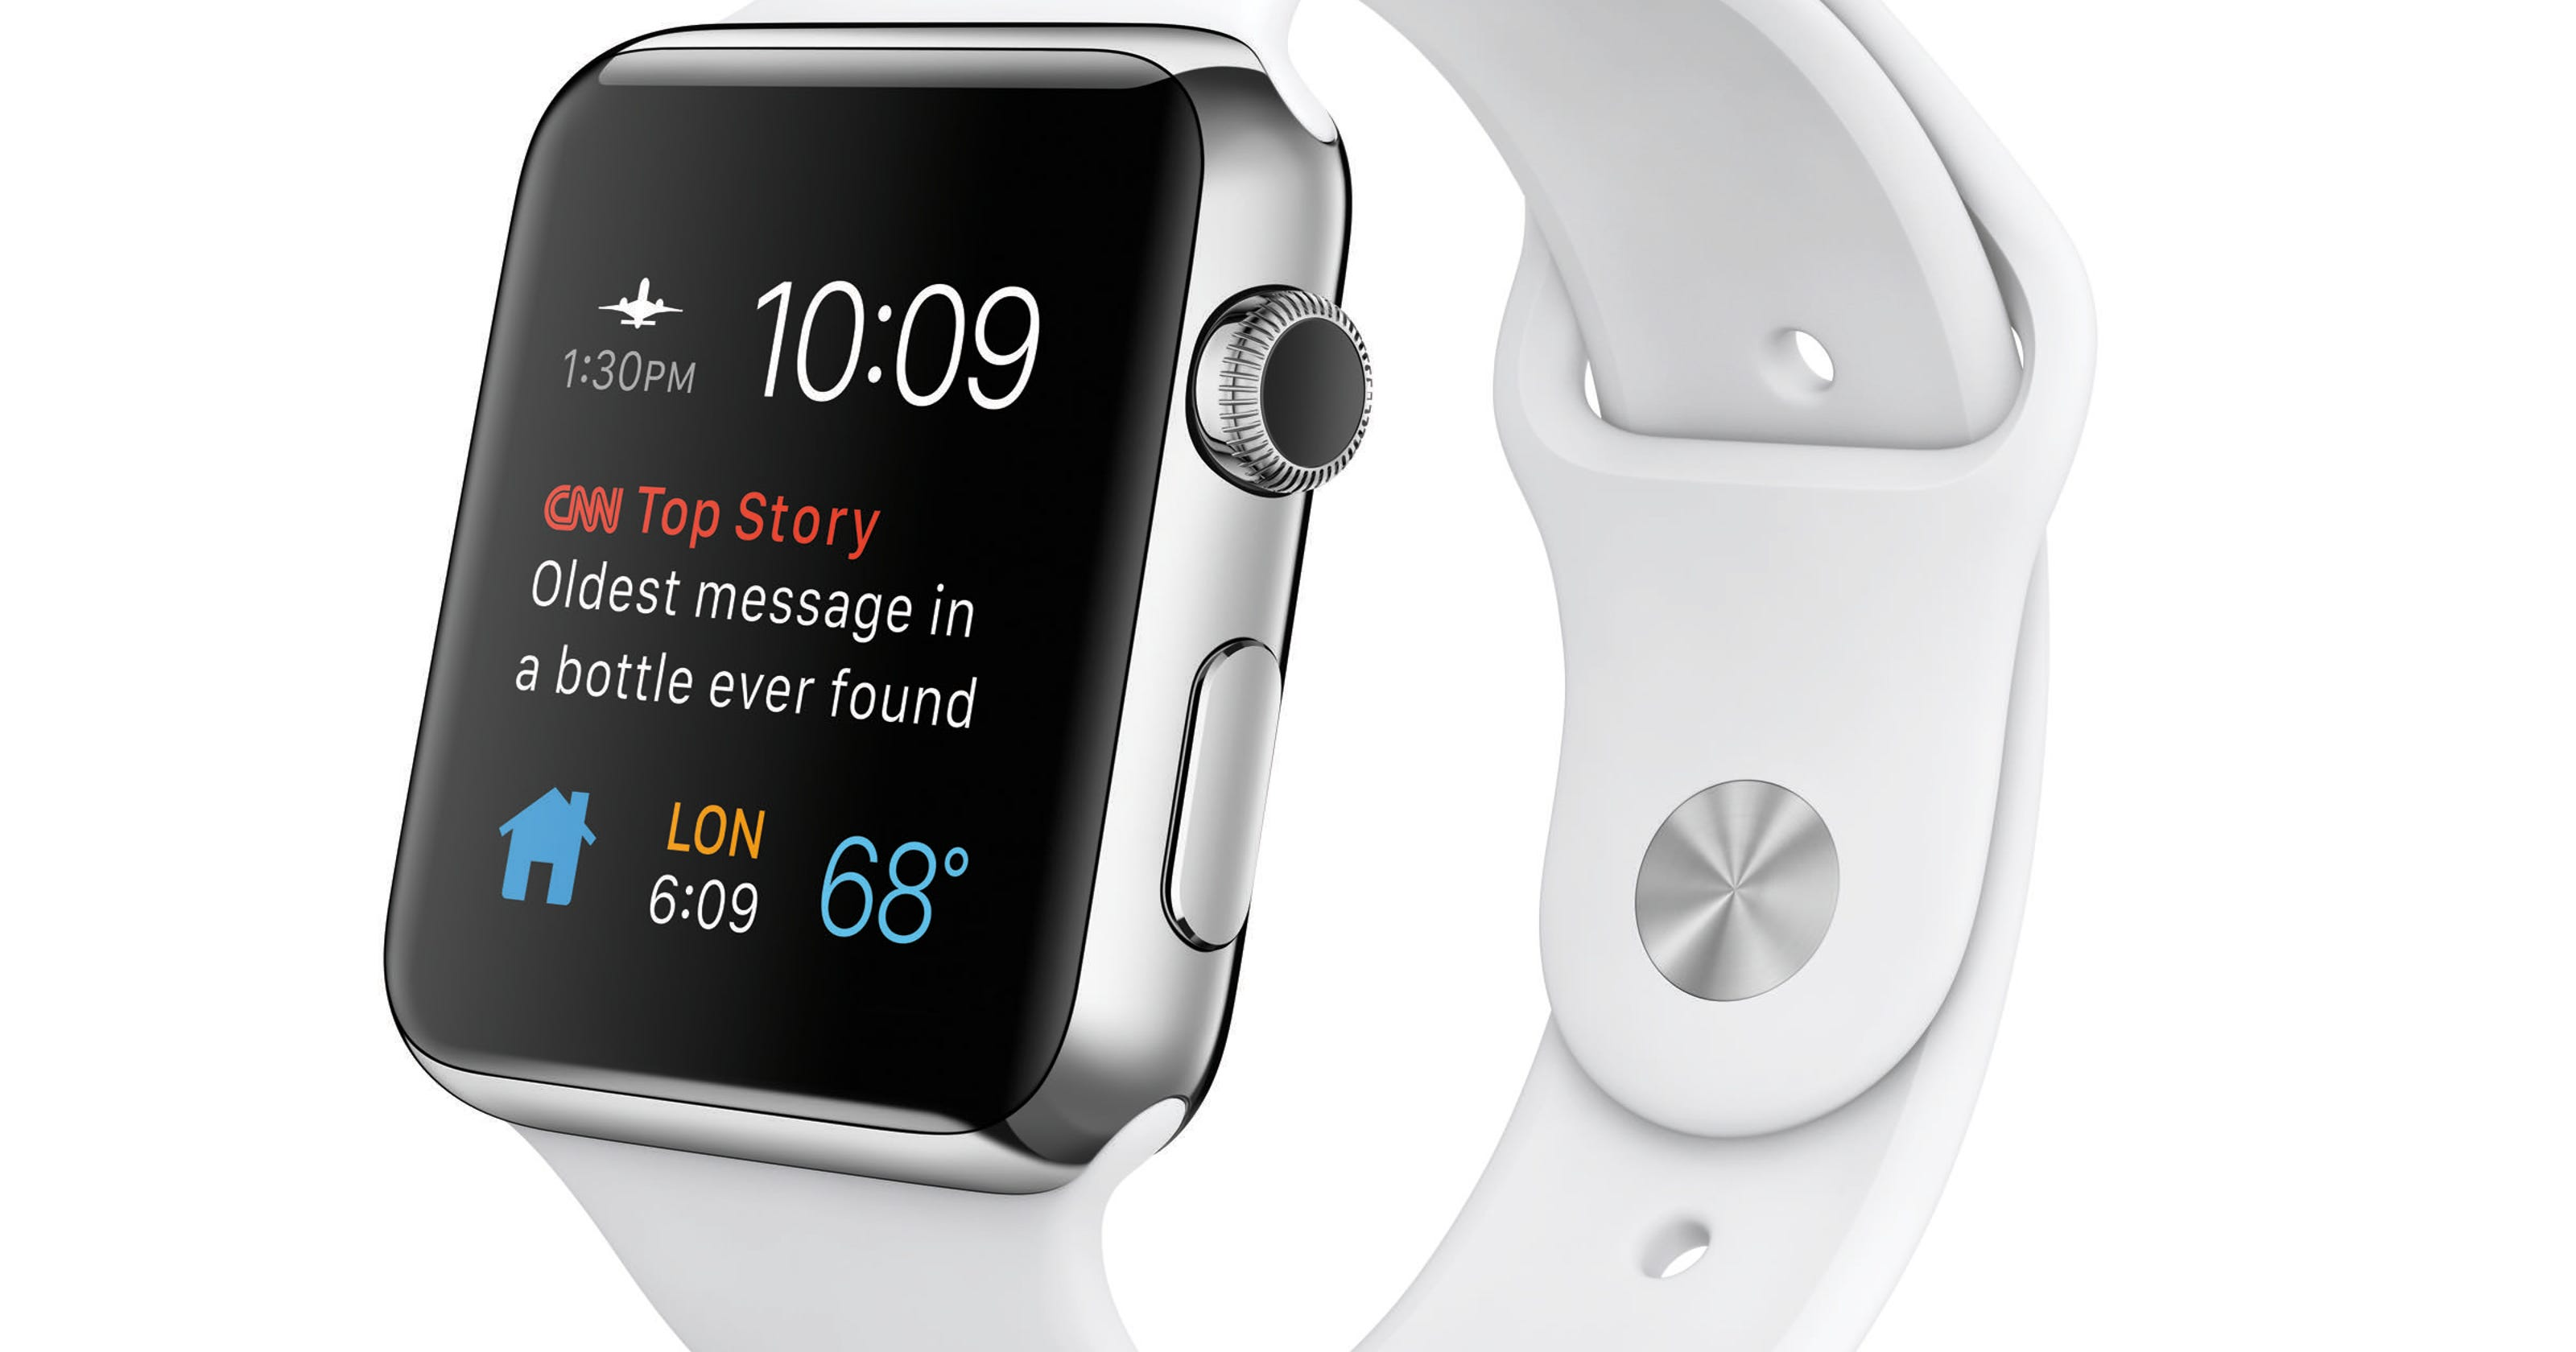 Bug forces delay of Apple Watch software upgrade